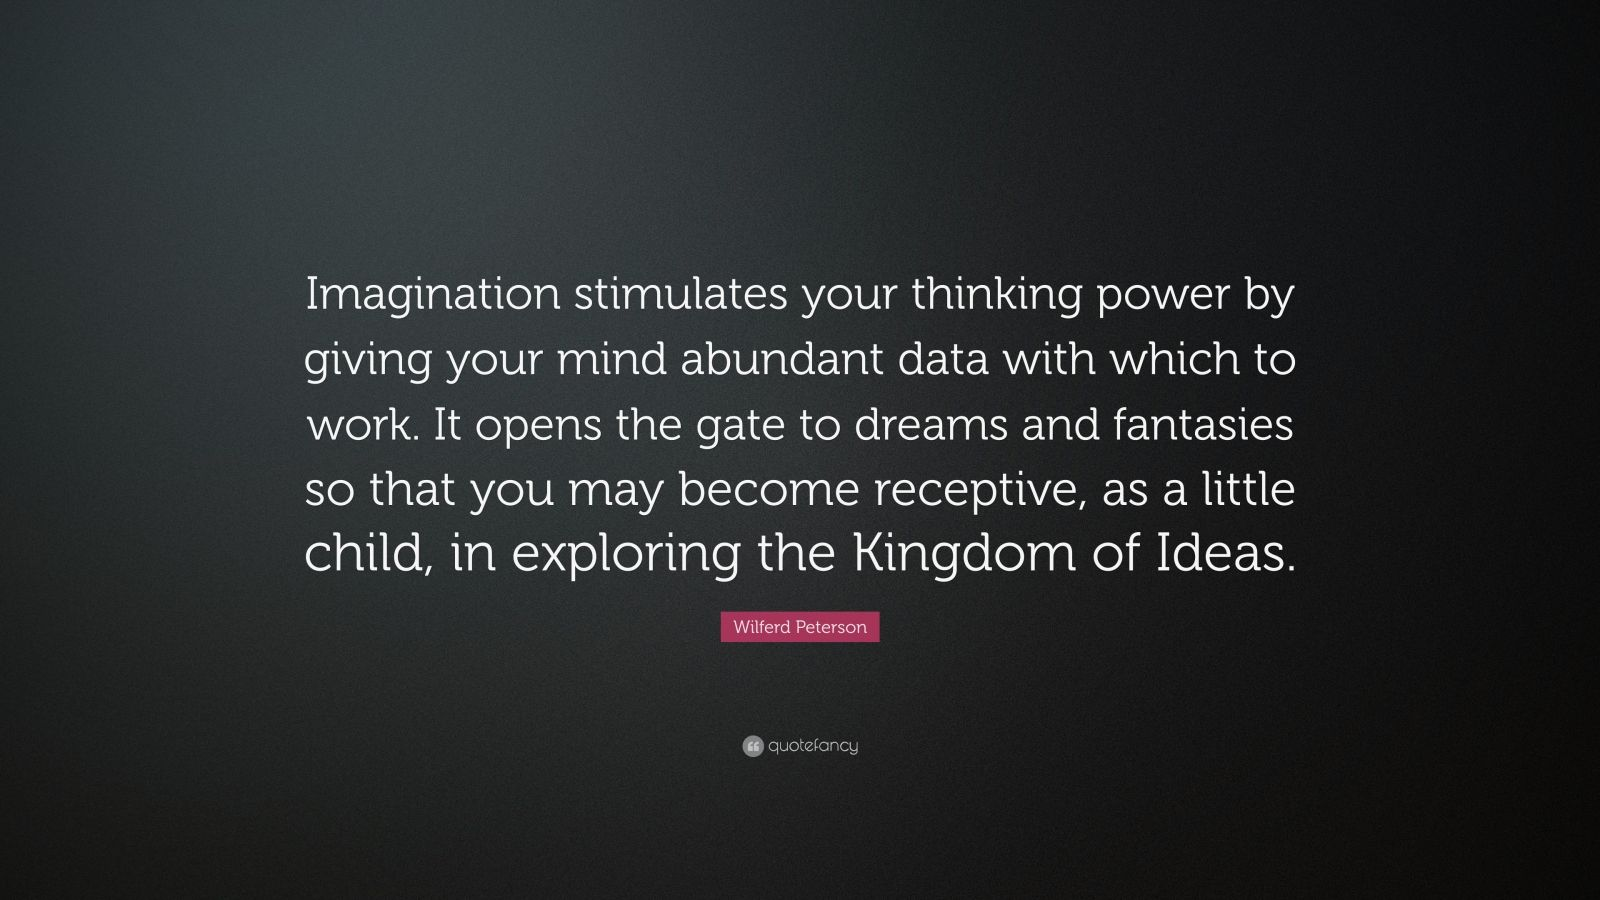 identify three key strategies that help stimulate your imagination how might you use those strategie How to stimulate imagination the word imagination is a complex one sometimes it refers to someone's ability to be creative or think outside resolve to create imaginative art for all of that time it could be music, knitting, writing, or painting: whatever medium you use to express your imagination.